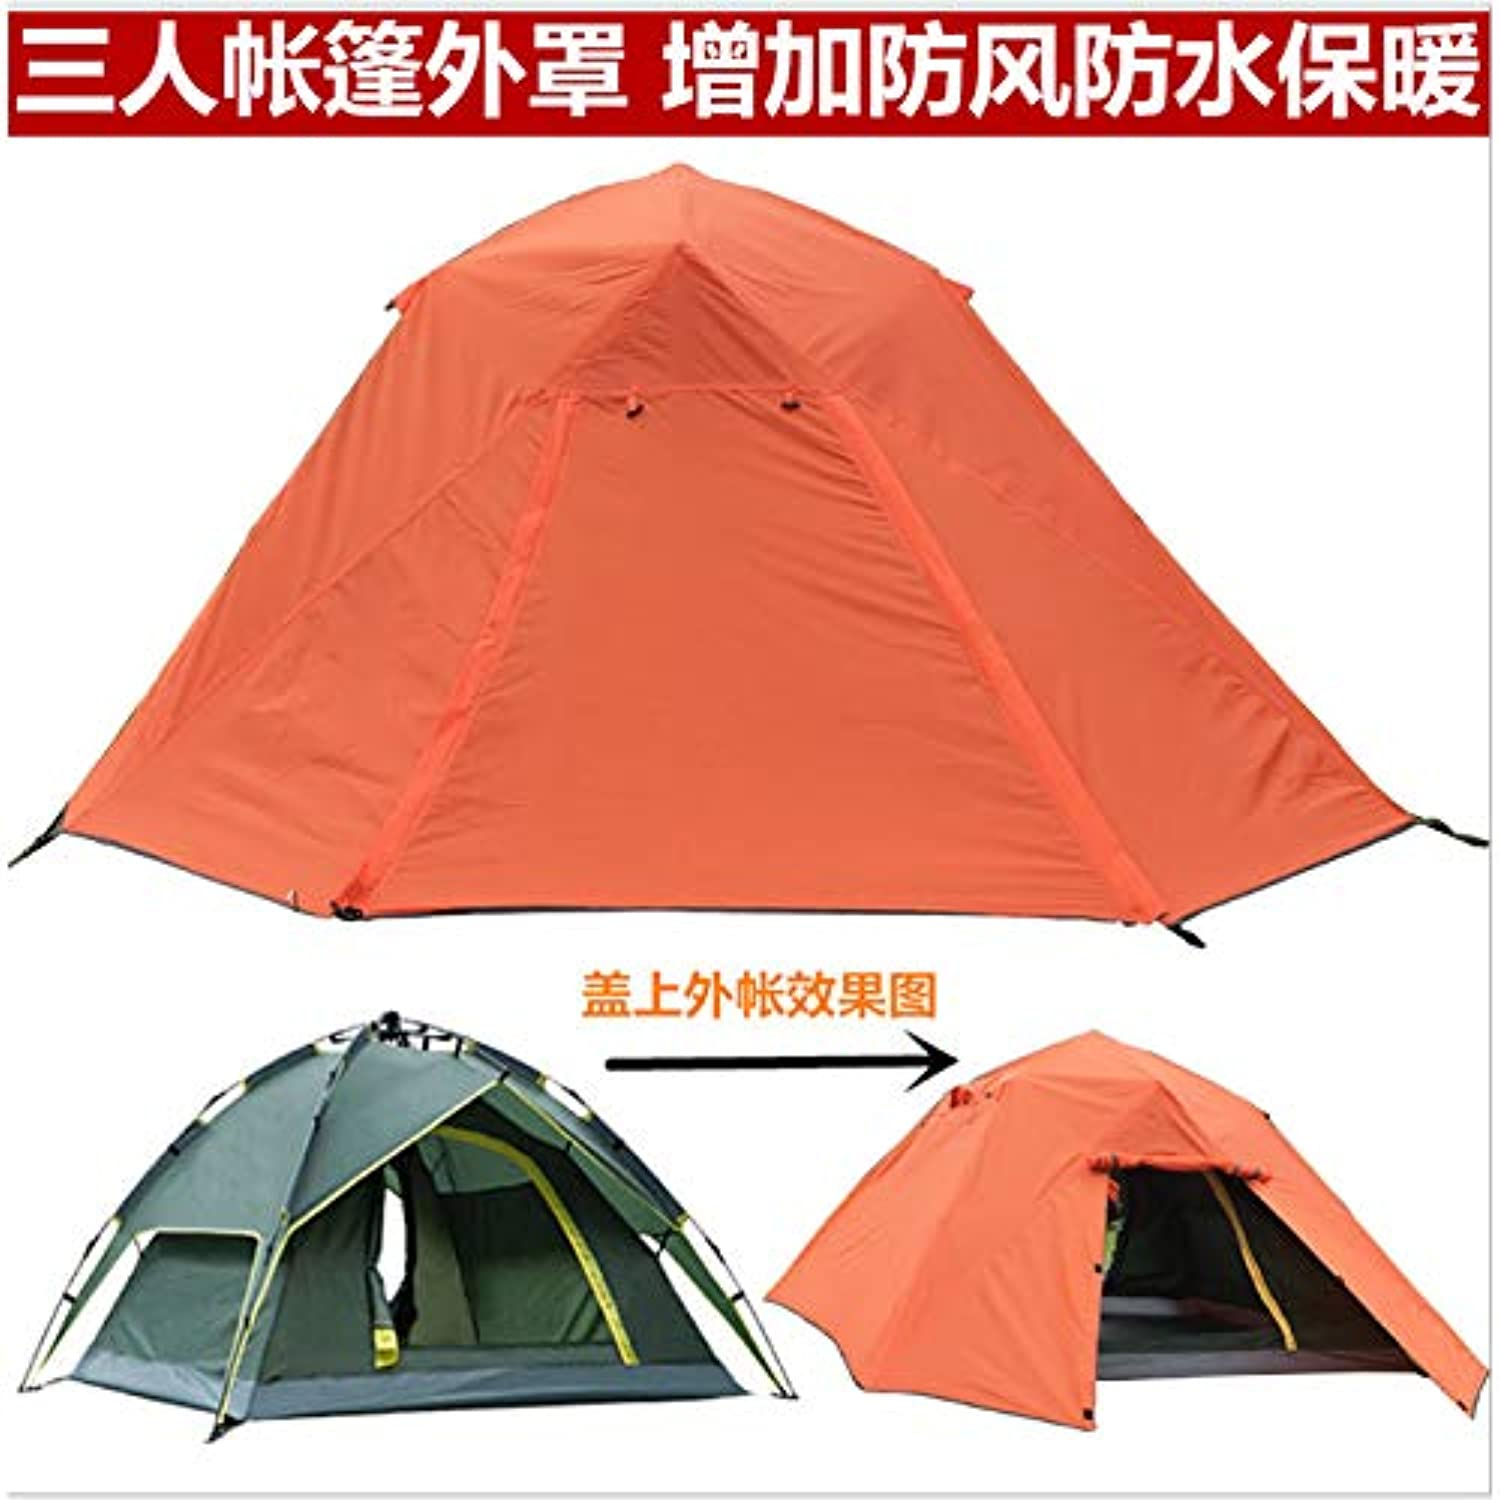 Covers Single Account Outside The Tent People Camping 2-3-4 User Accounts Peng Unlisted Camping Waterproof Outer Layer of Cloth Accessories